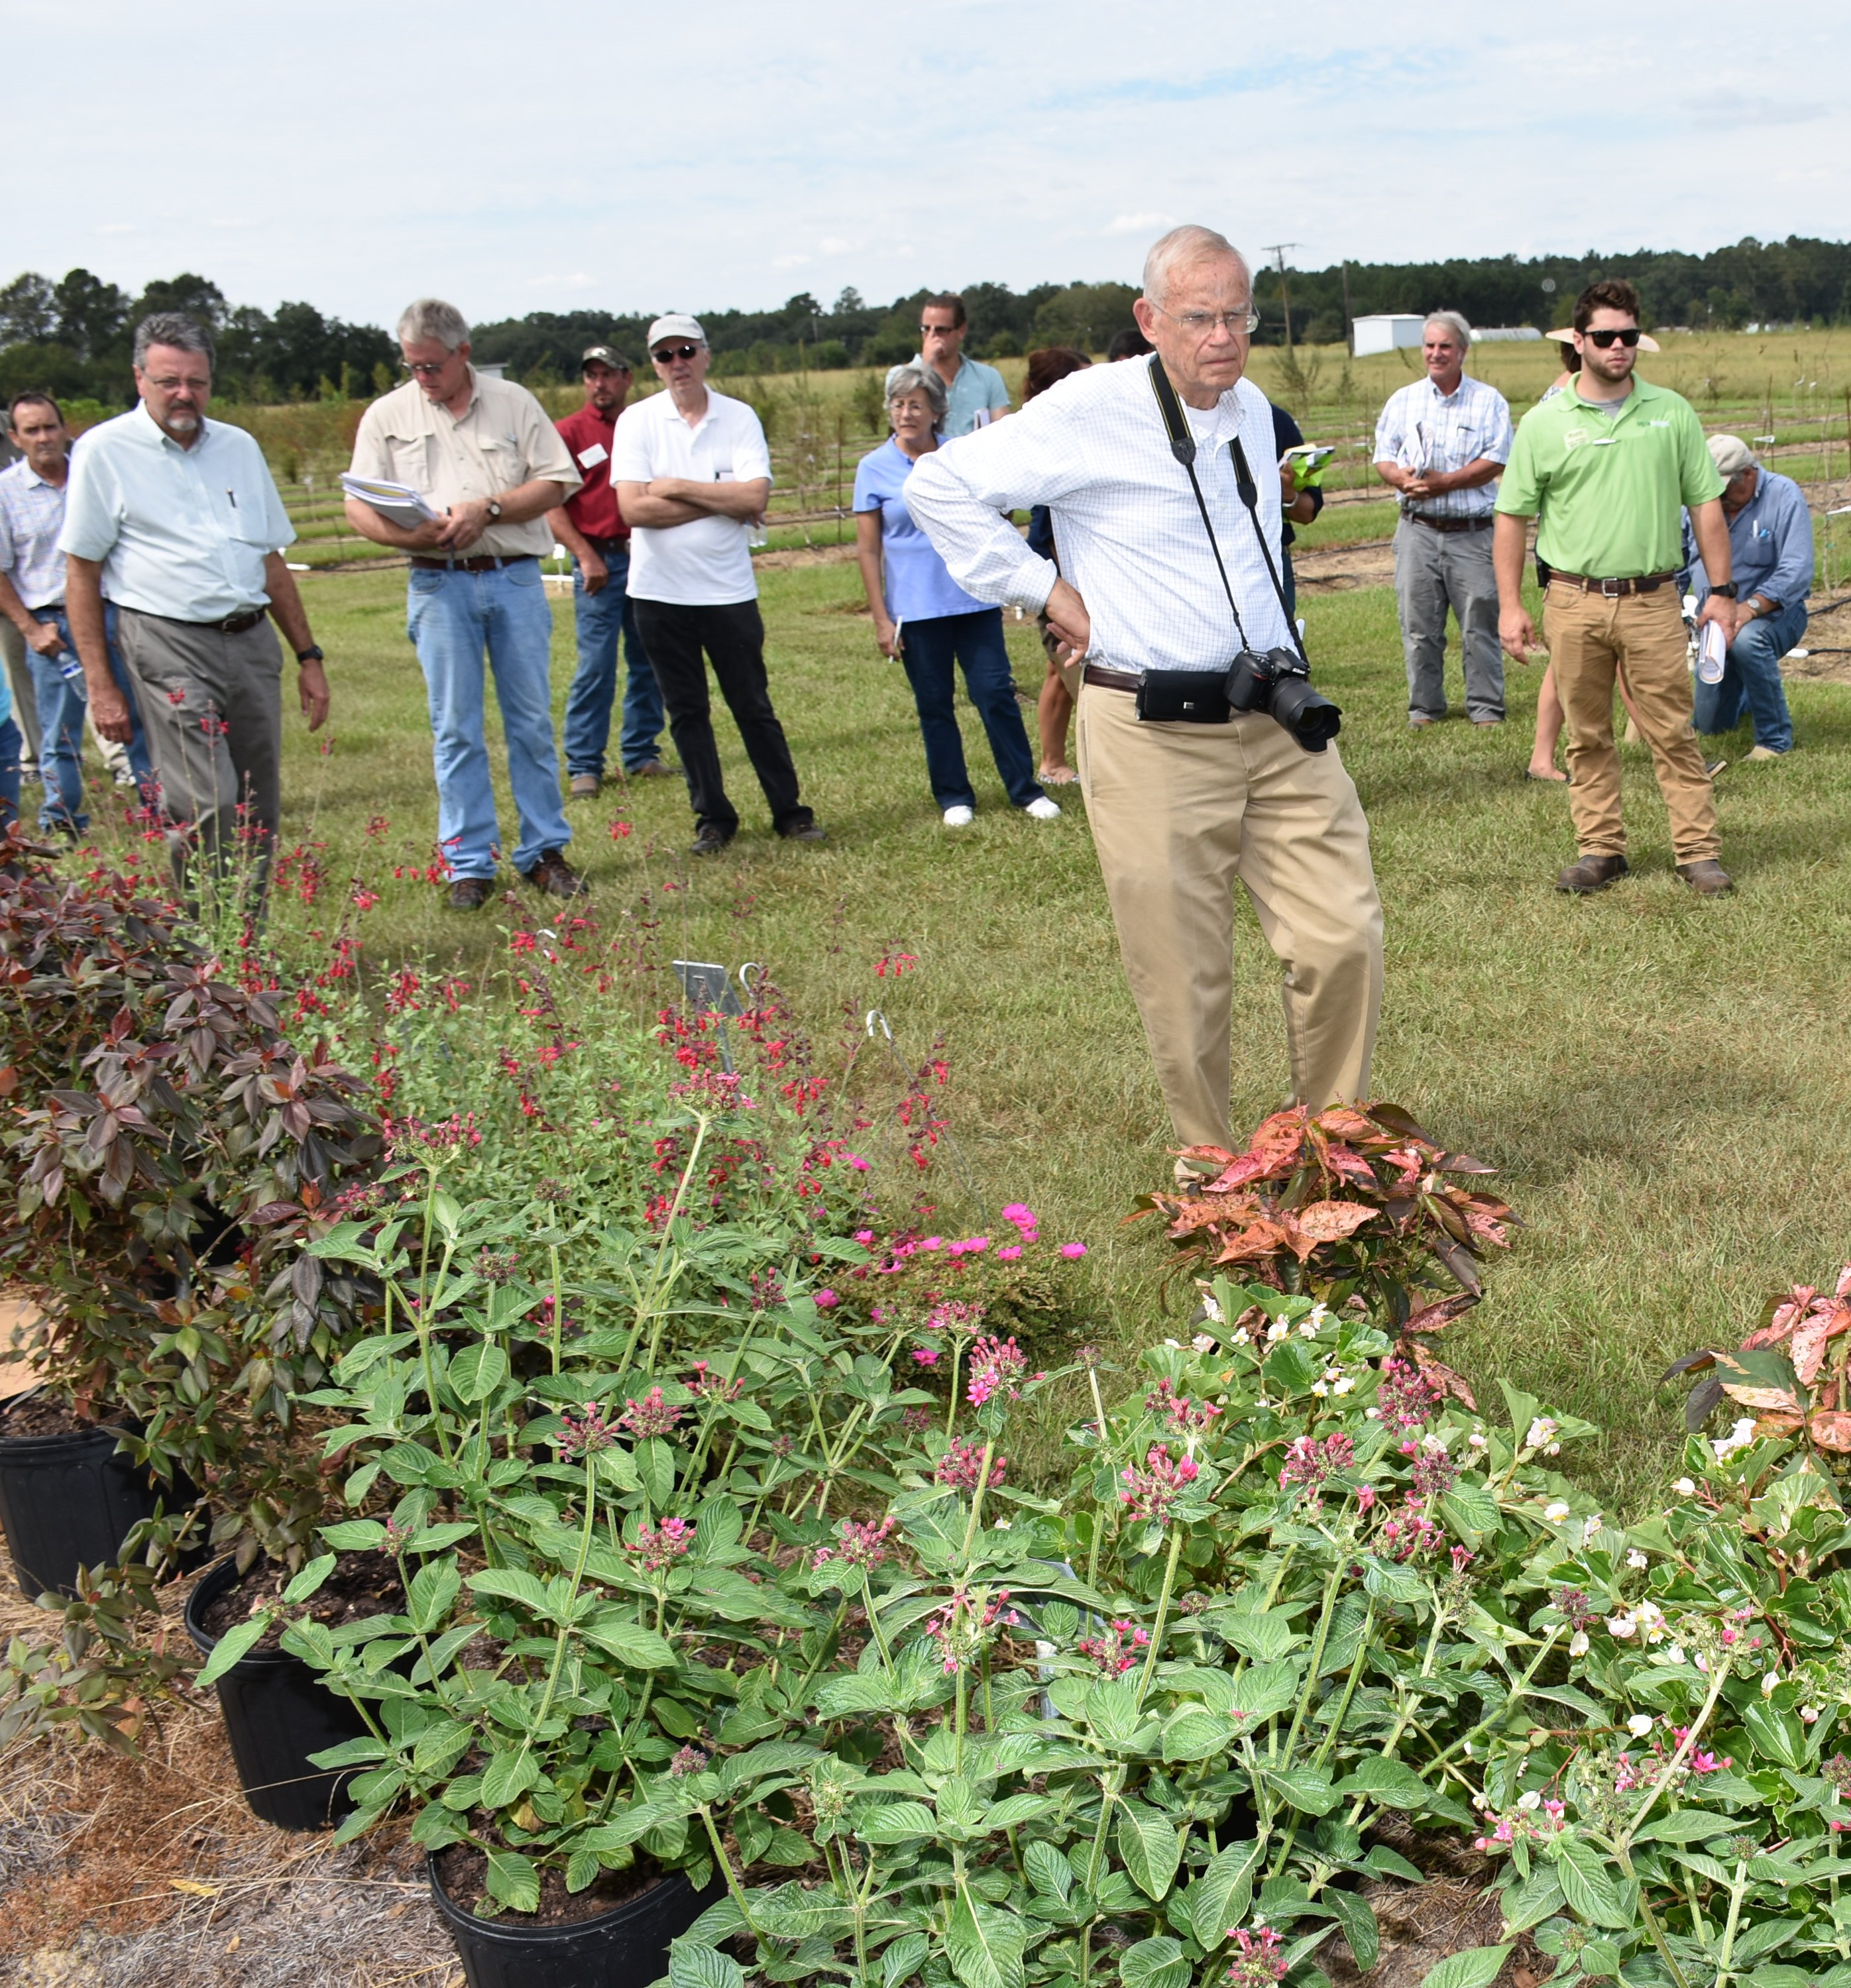 Spring garden forum set for Feb. 17 in DeRidder